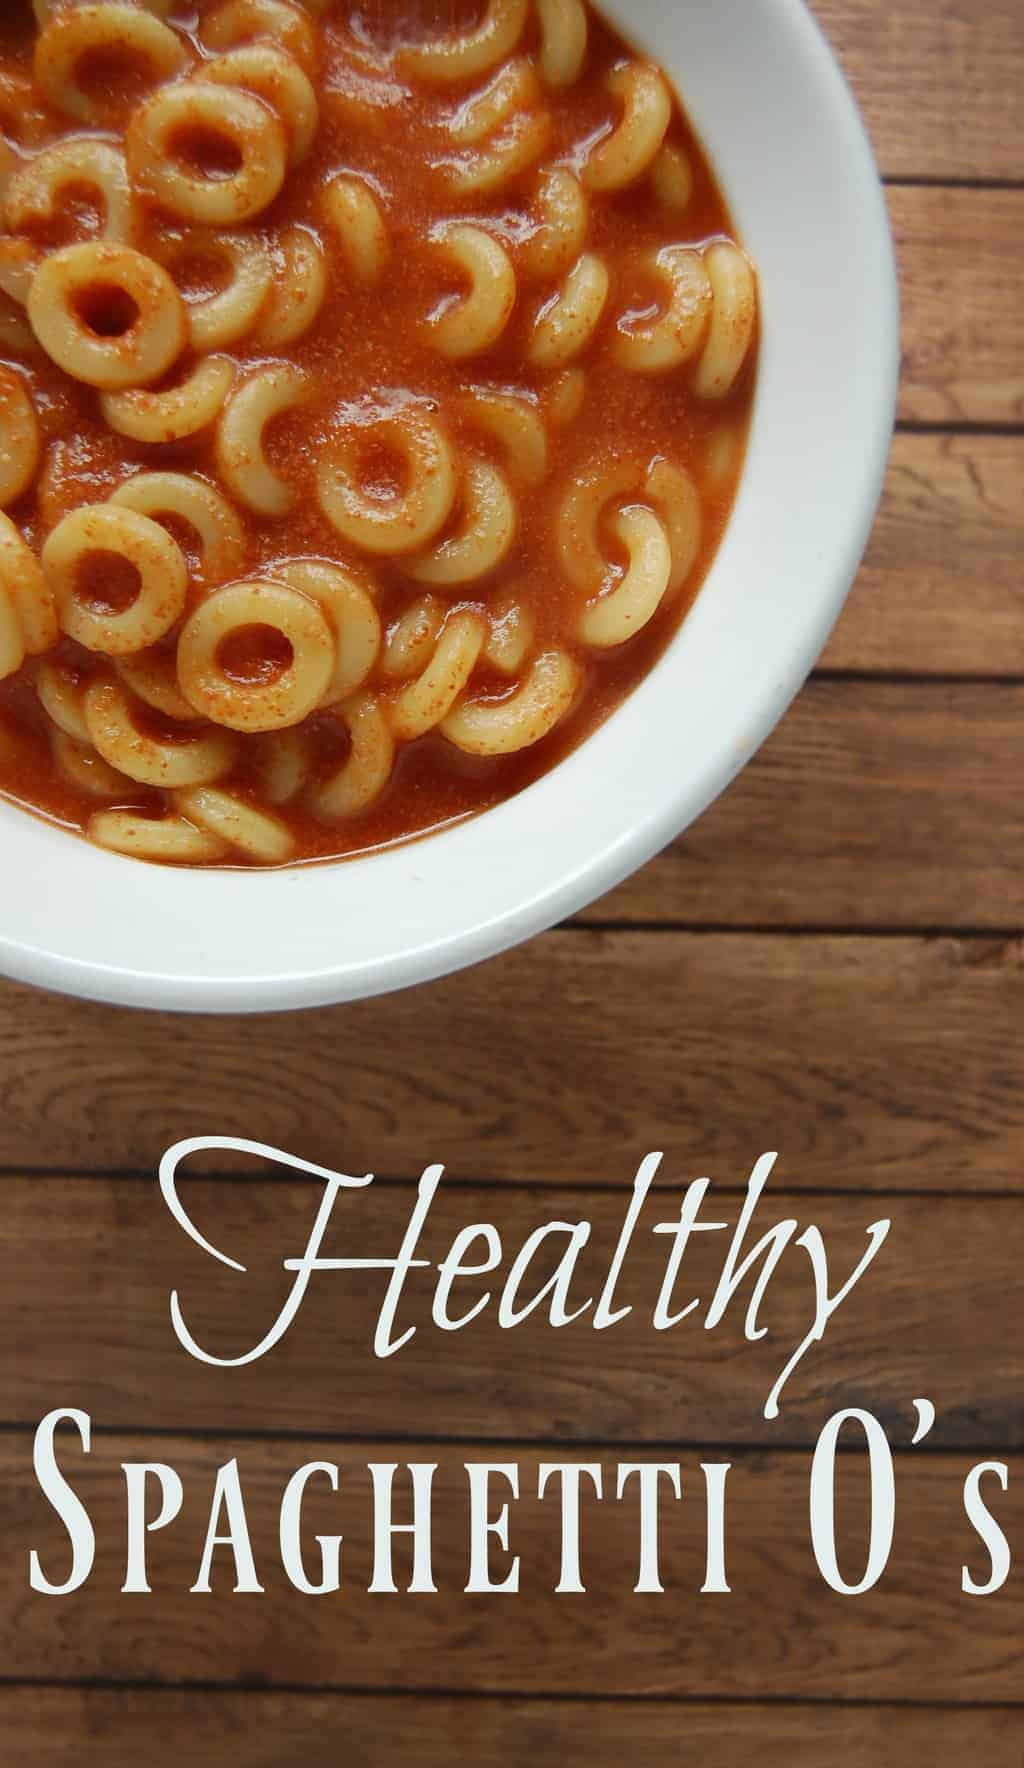 Healthy Spaghetti O's - Awesome! Let your kids have Spaghetti O's! No guilt here with this BPA free, HFCS free, real food spaghetti o recipe! You can even make it dairy free! #SpaghtettiOs #kidfood #kids #healthyfoods